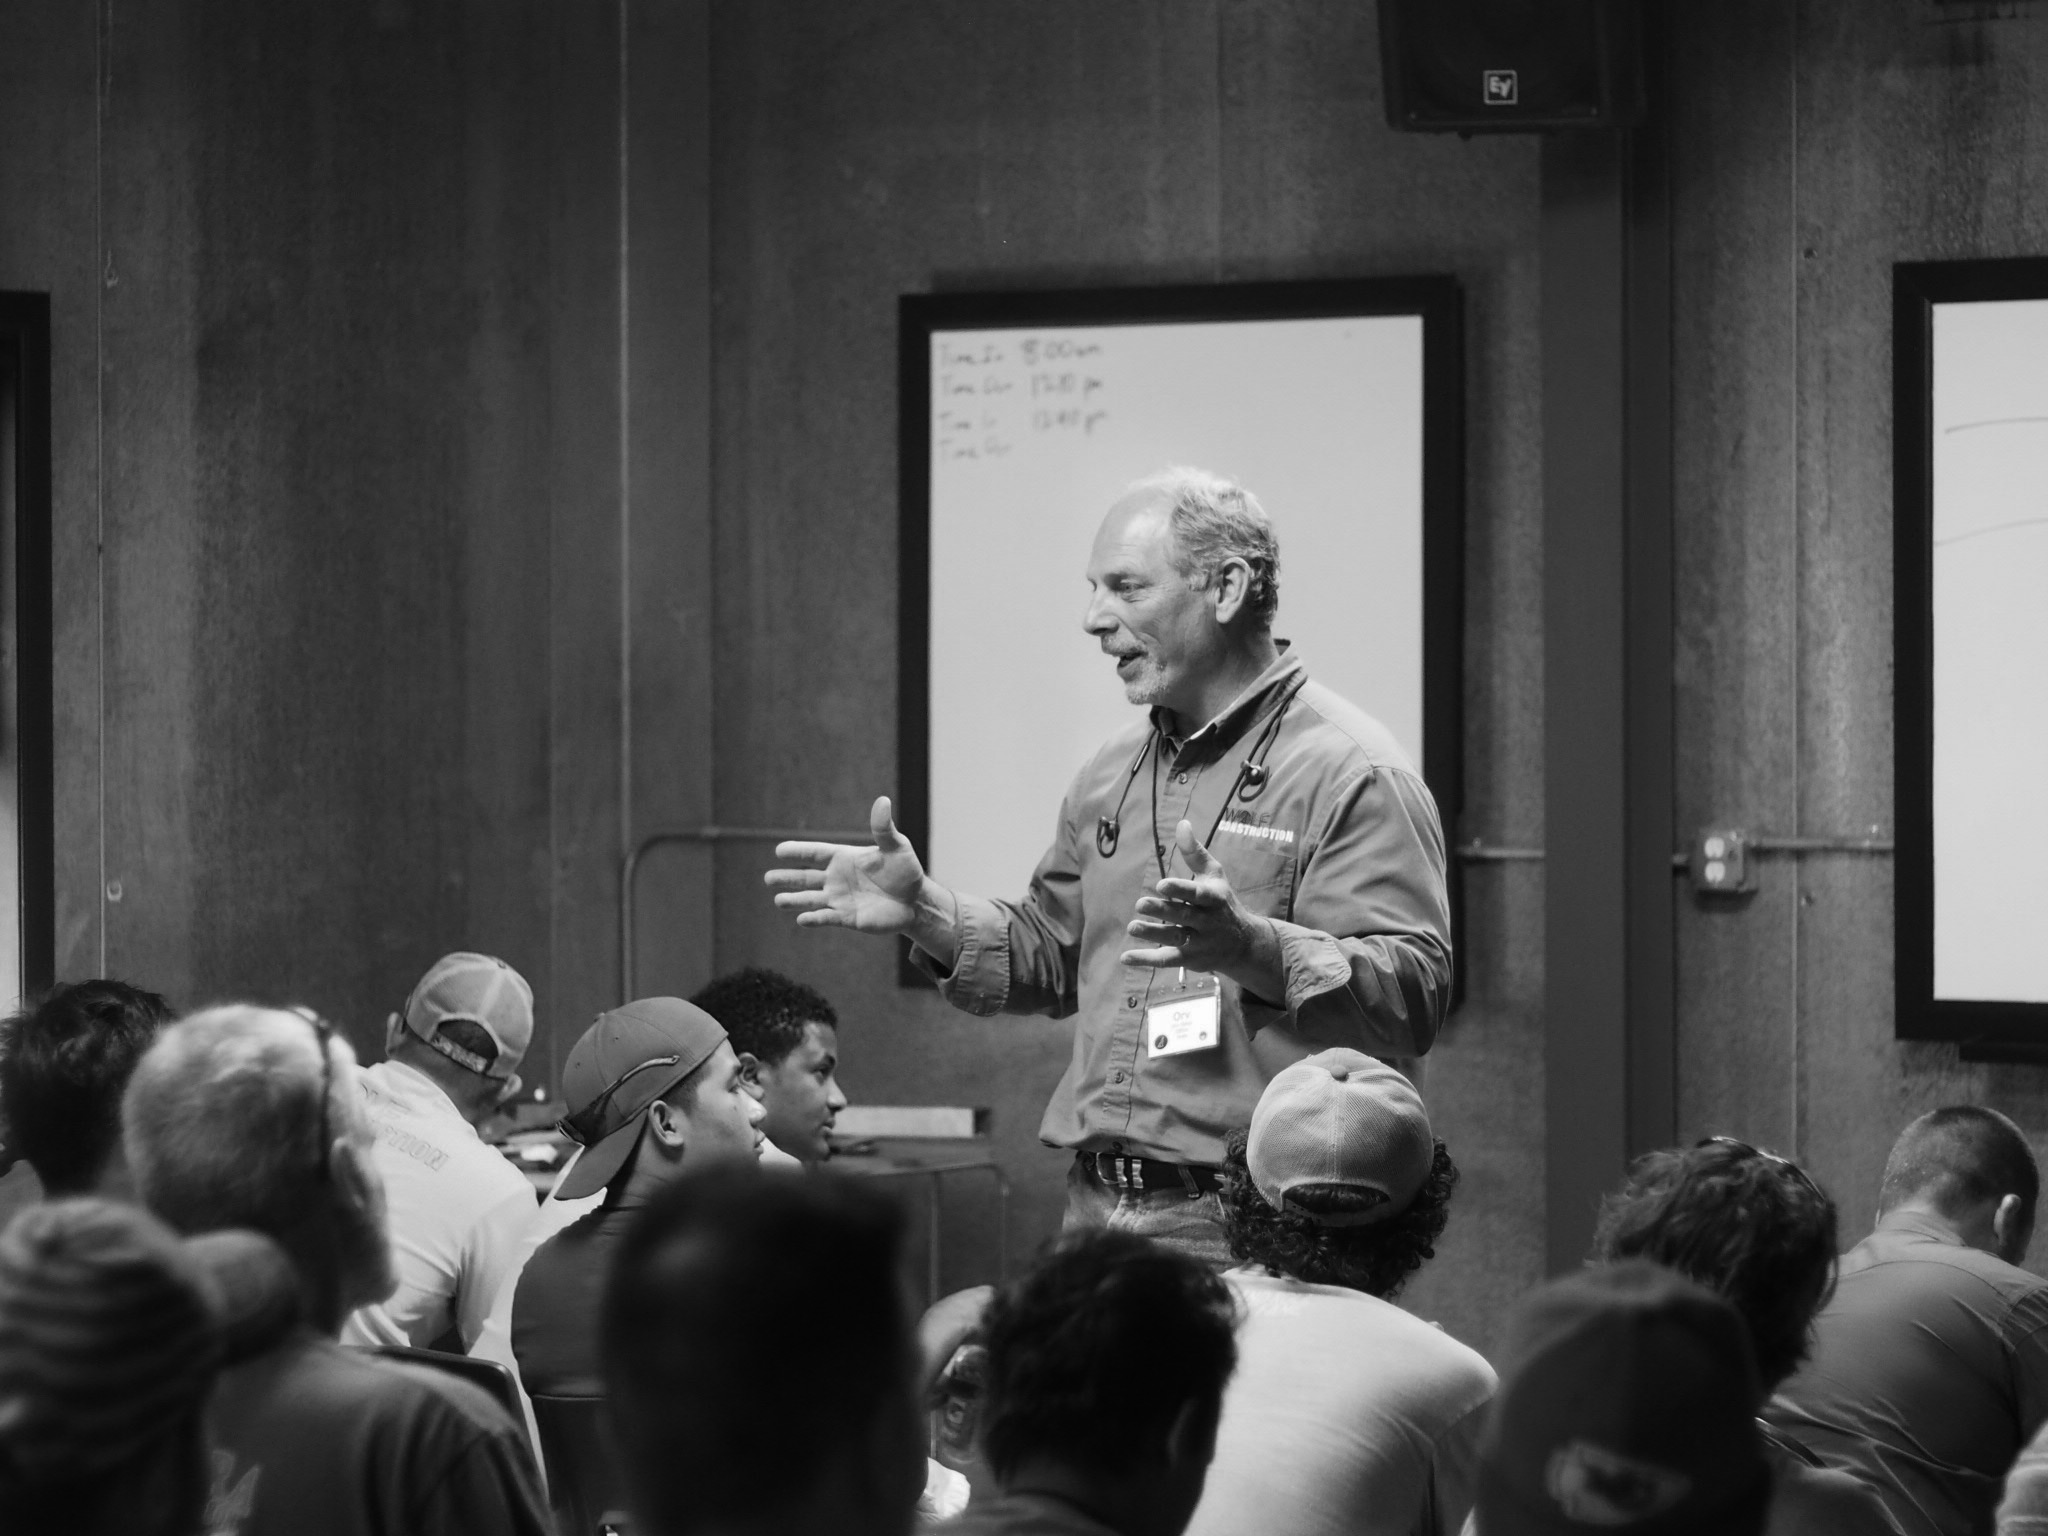 Orv Otten, Dir of Field Personnel, teaching at one of the all-company Bedrock Meetings.